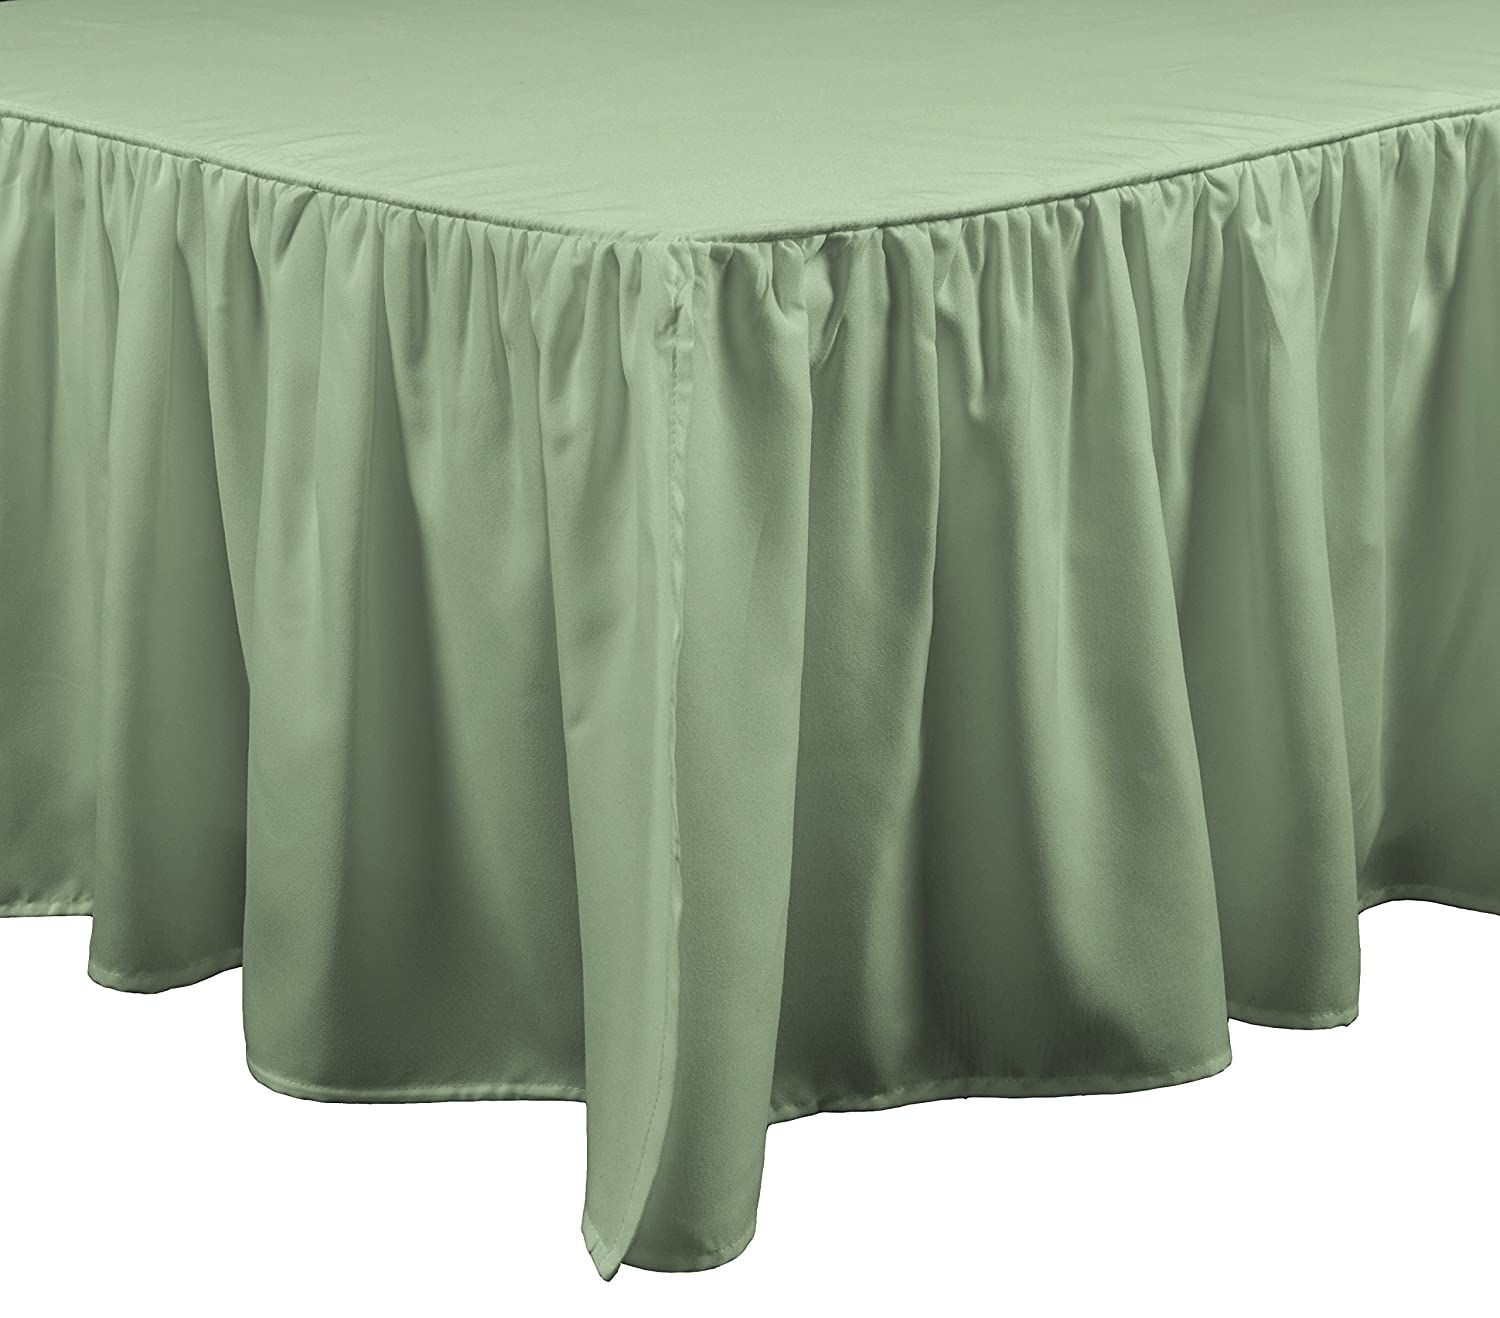 Buy Best Bedskirts Amp Dust Ruffles Ease Bedding With Style